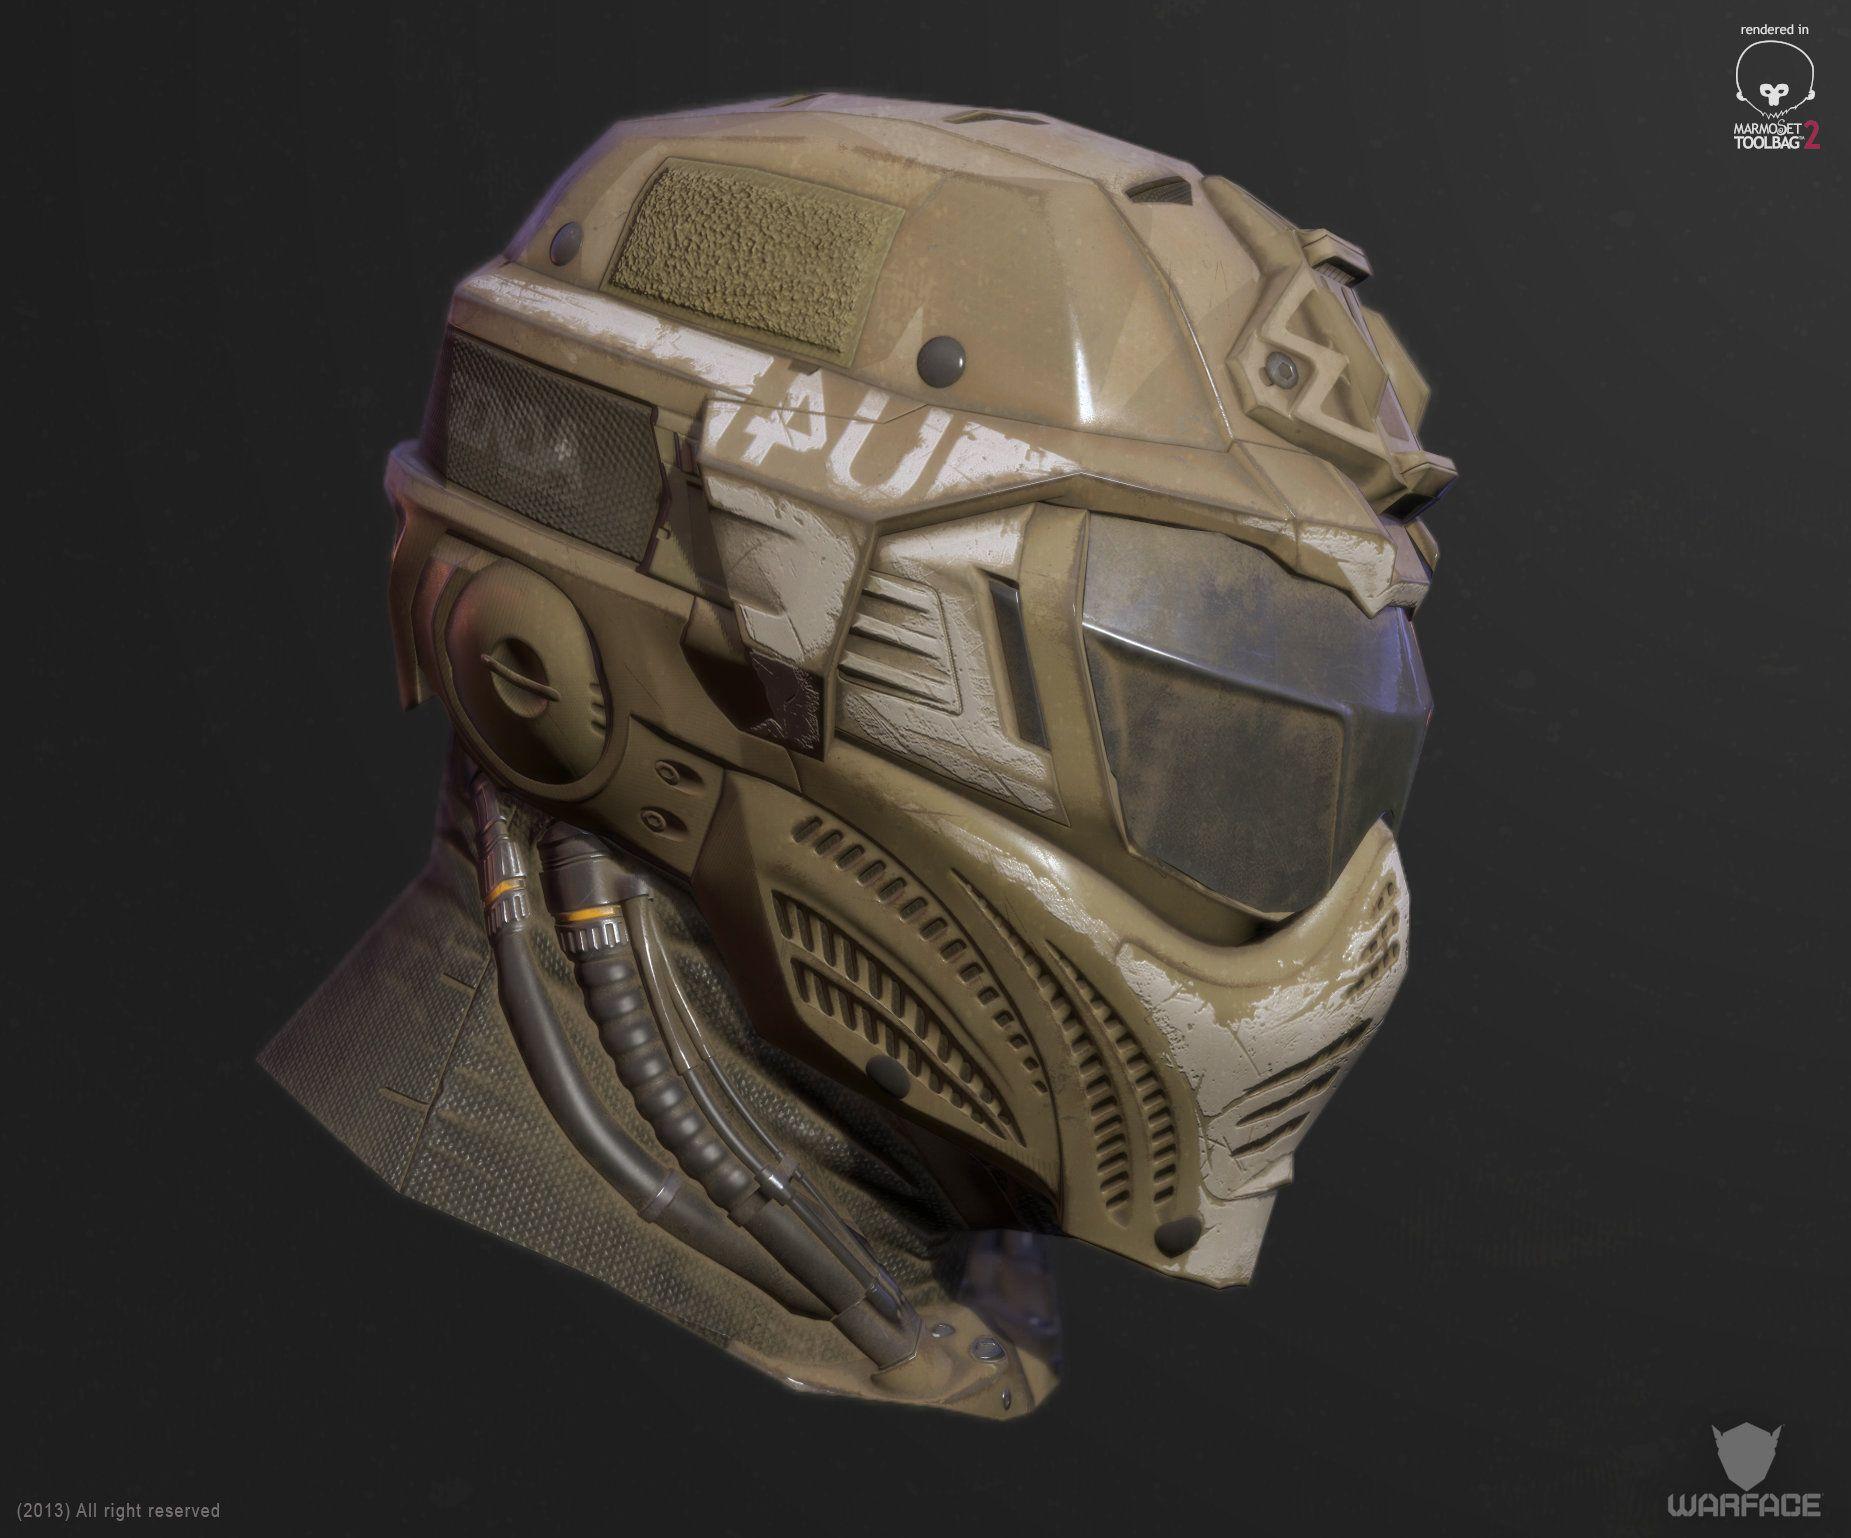 artstation new 3d model for crytek soldier helmet denis didenko helmet pinterest. Black Bedroom Furniture Sets. Home Design Ideas